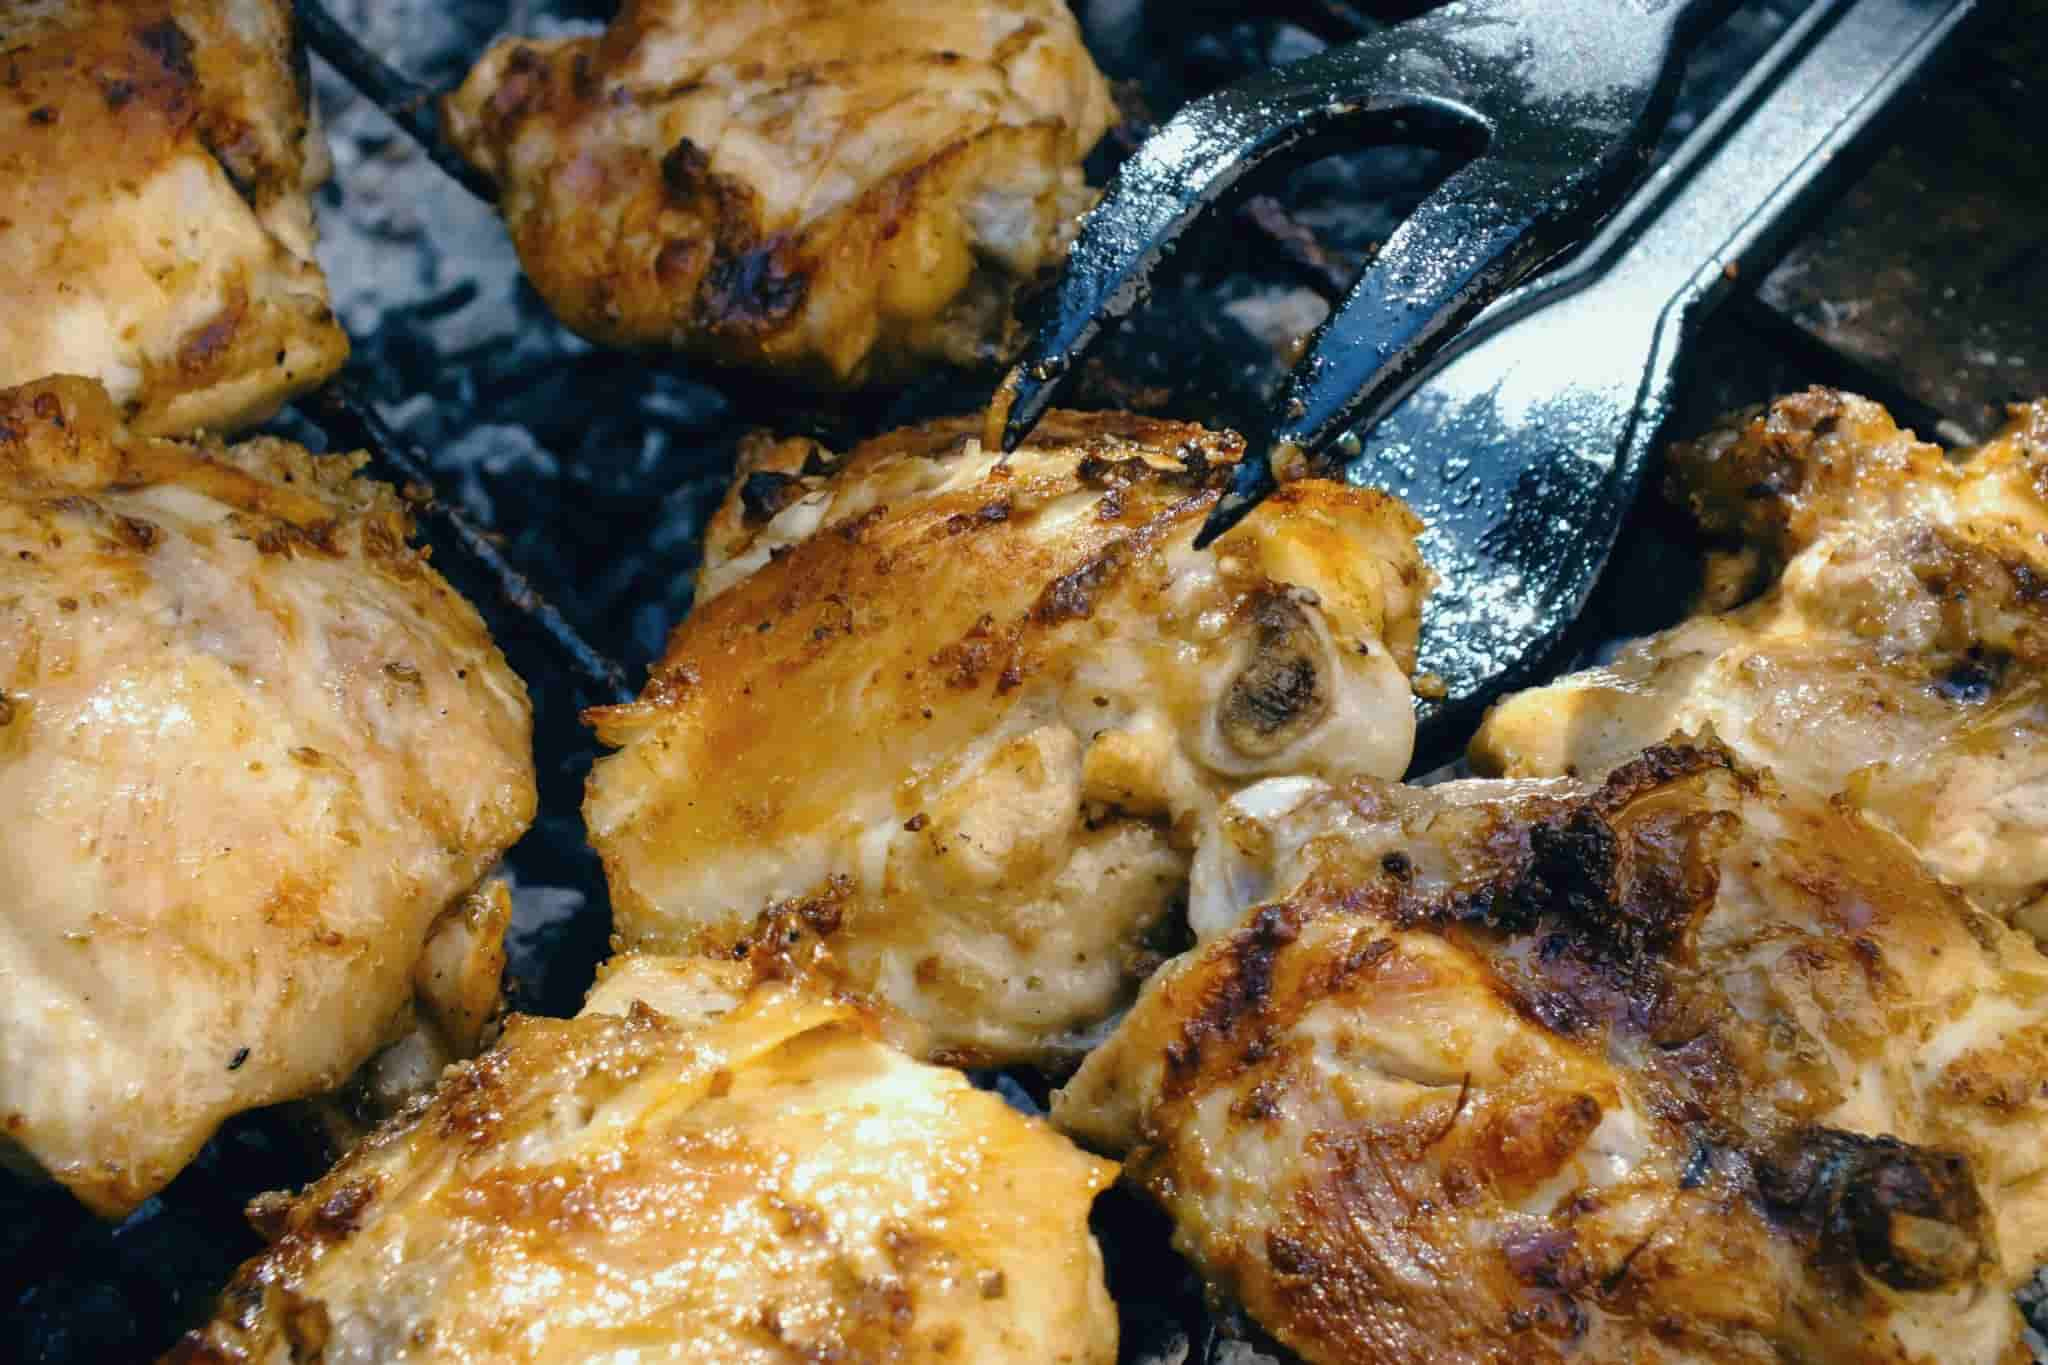 chicken being grilled on a BBQ with tongs in shot